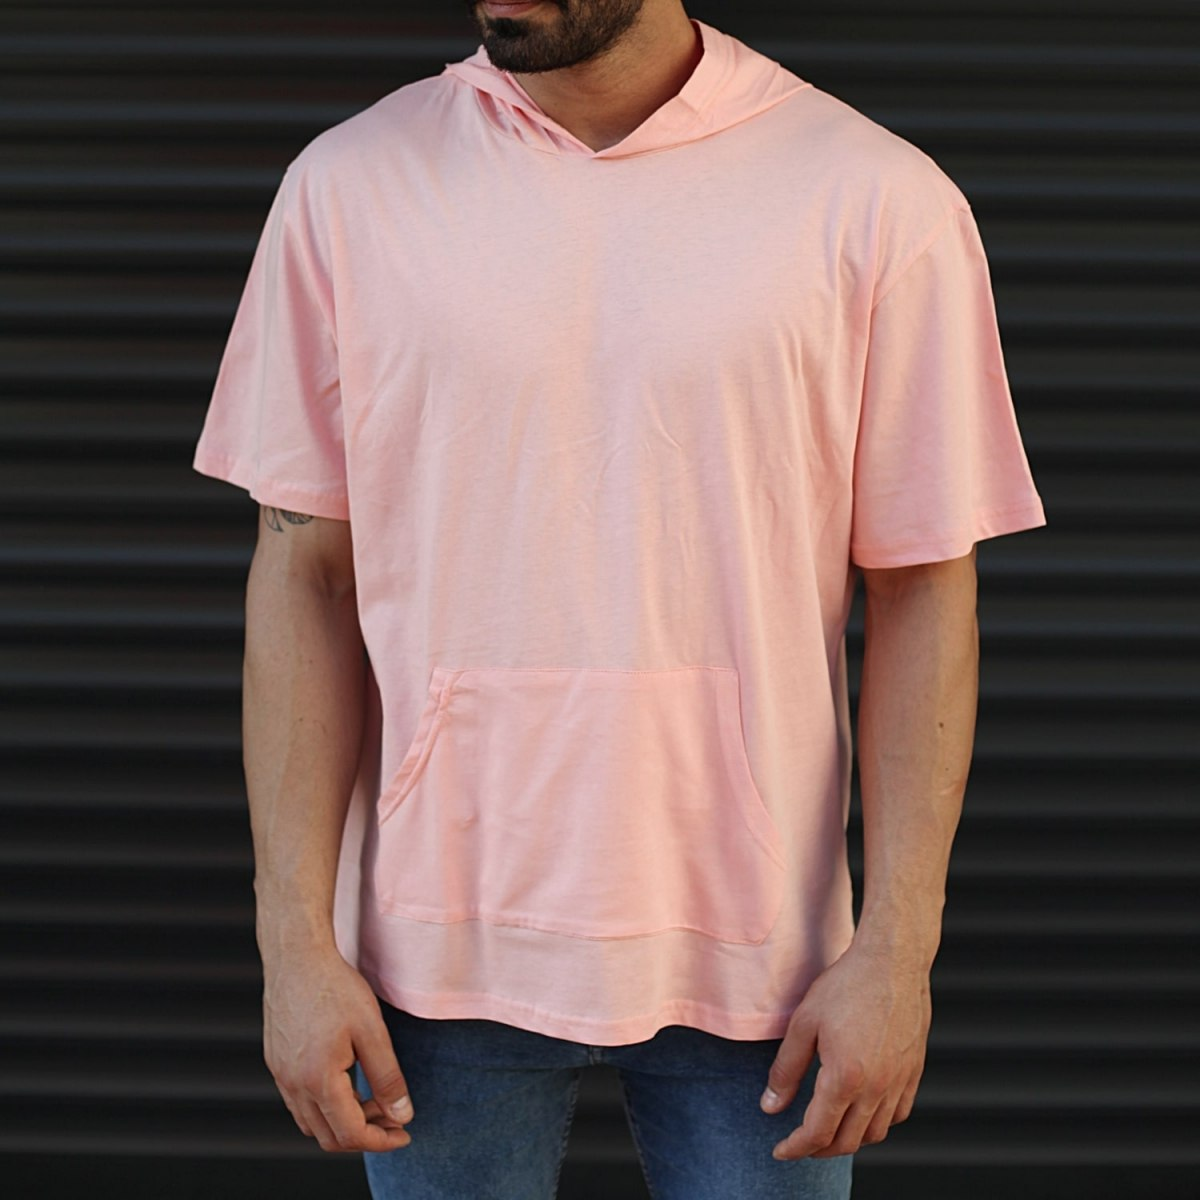 Men's Hooded Short Sleeve T-Shirt With Pockets Pink